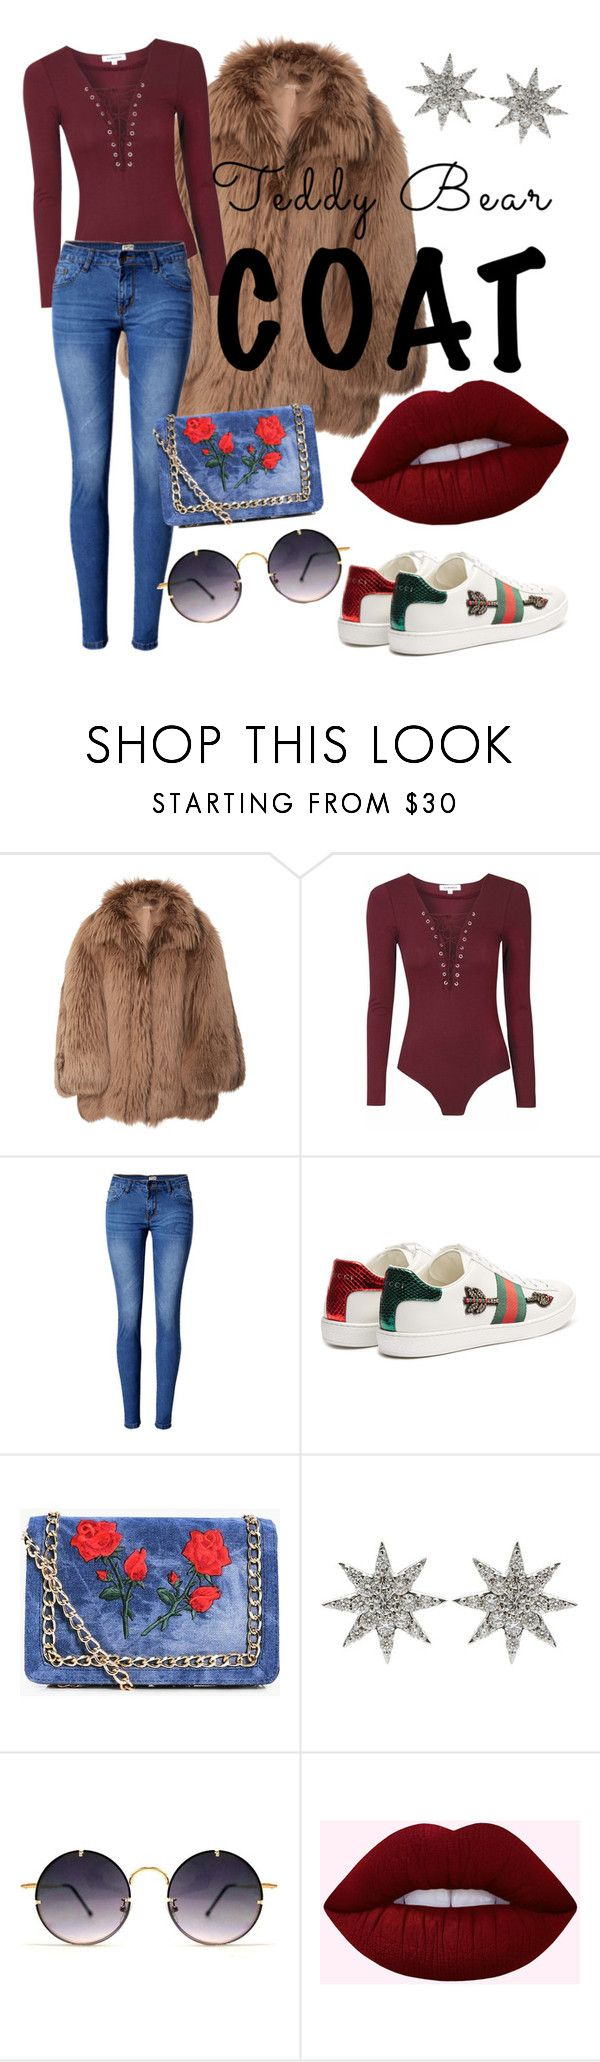 """""""sassy teddy bear"""" by alifia-fae on Polyvore featuring Michael Kors, WithChic, Gucci, Boohoo, Bee Goddess and Spitfire"""